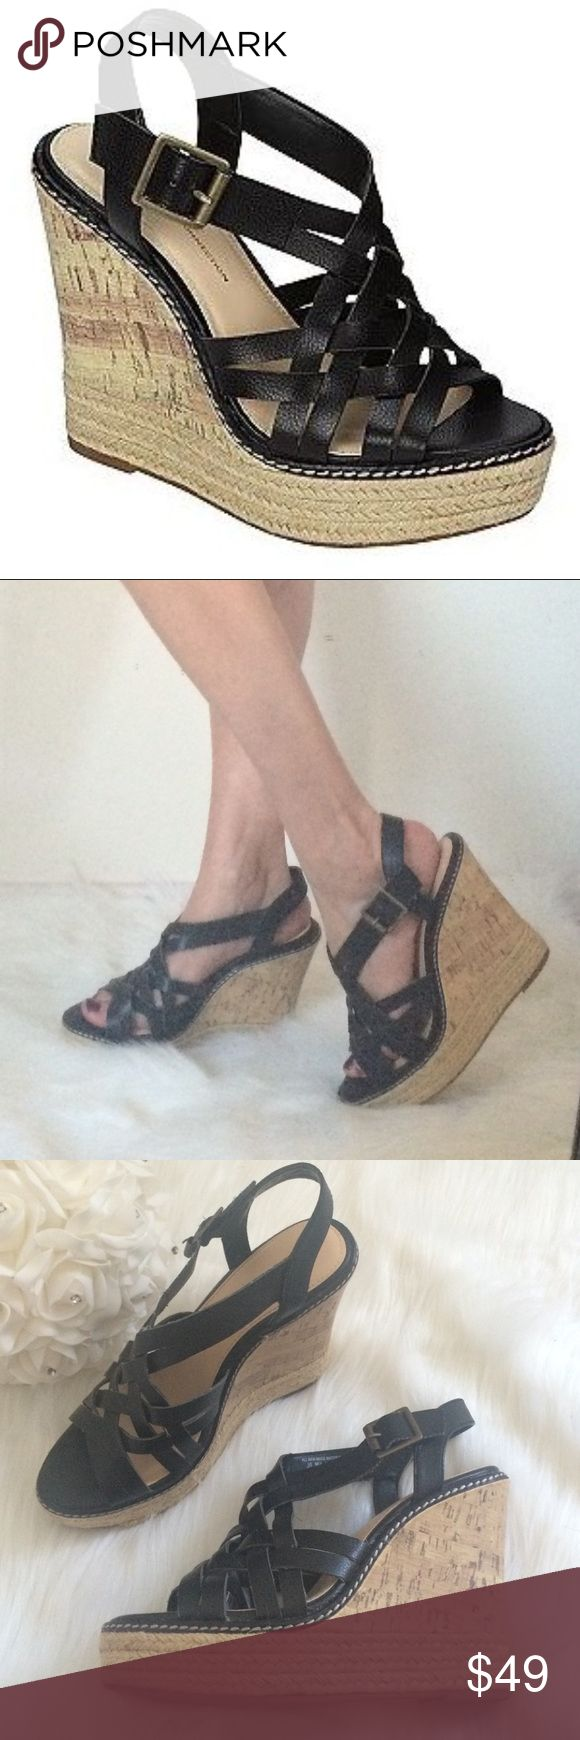 UK Style French Connection wedge heels Women's Bethany Strappy Wedge Sandal - Black- UK Style by French Connection-Shoes-Womens-Sandals. Size 8.5. Excellent condition. All man made materials. French Connection Shoes Wedges